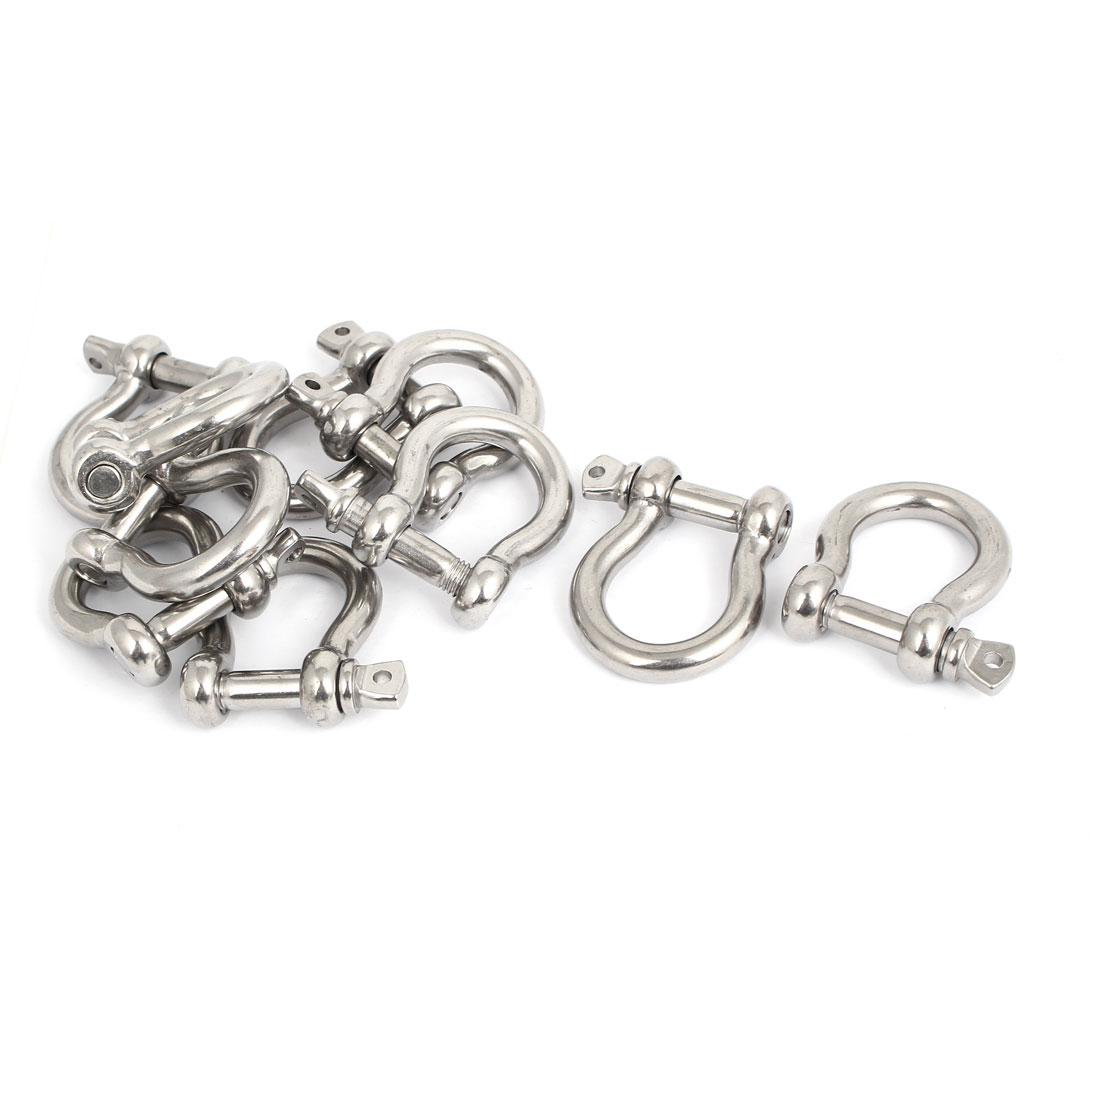 M10 Stainless Steel D Type Bow Rigging Shackle U Lock Survival Chain Buckle 10 Pcs